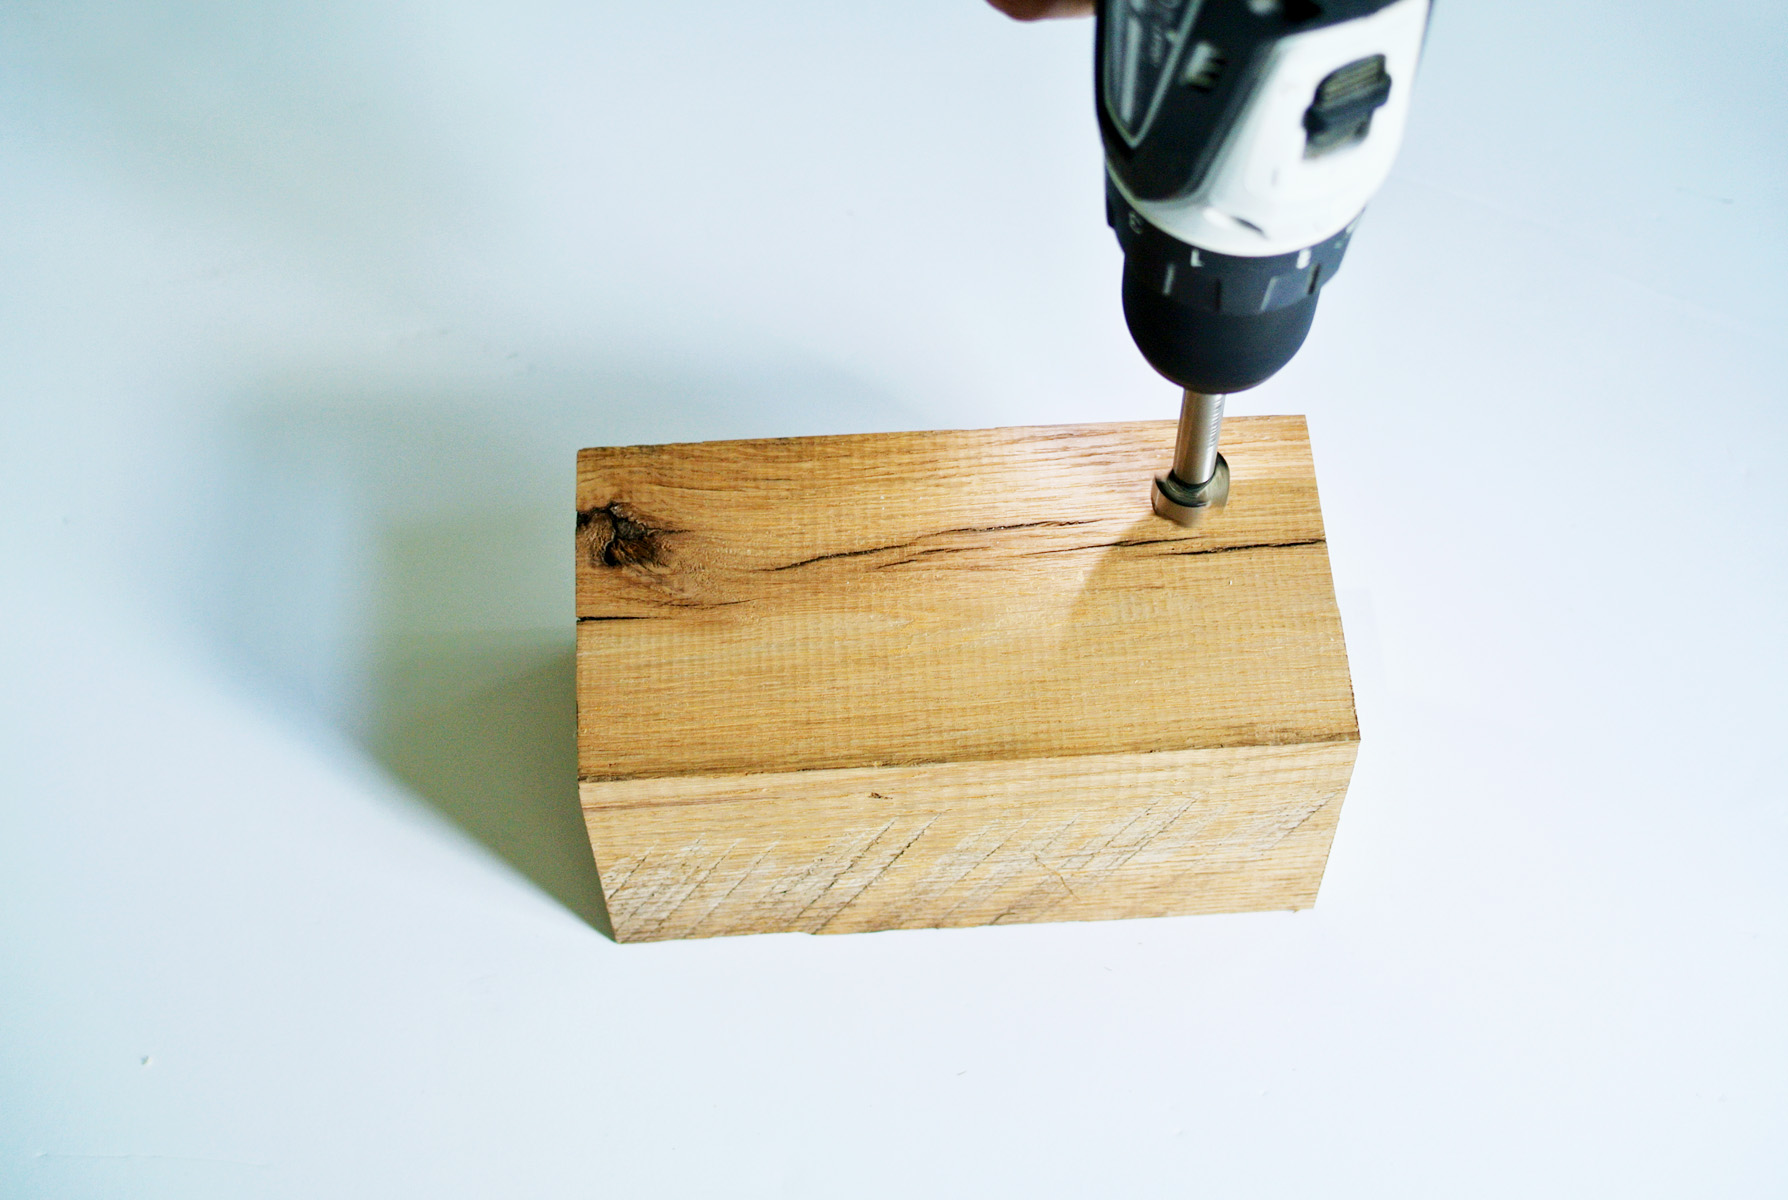 how to make a wooden block pencil holder